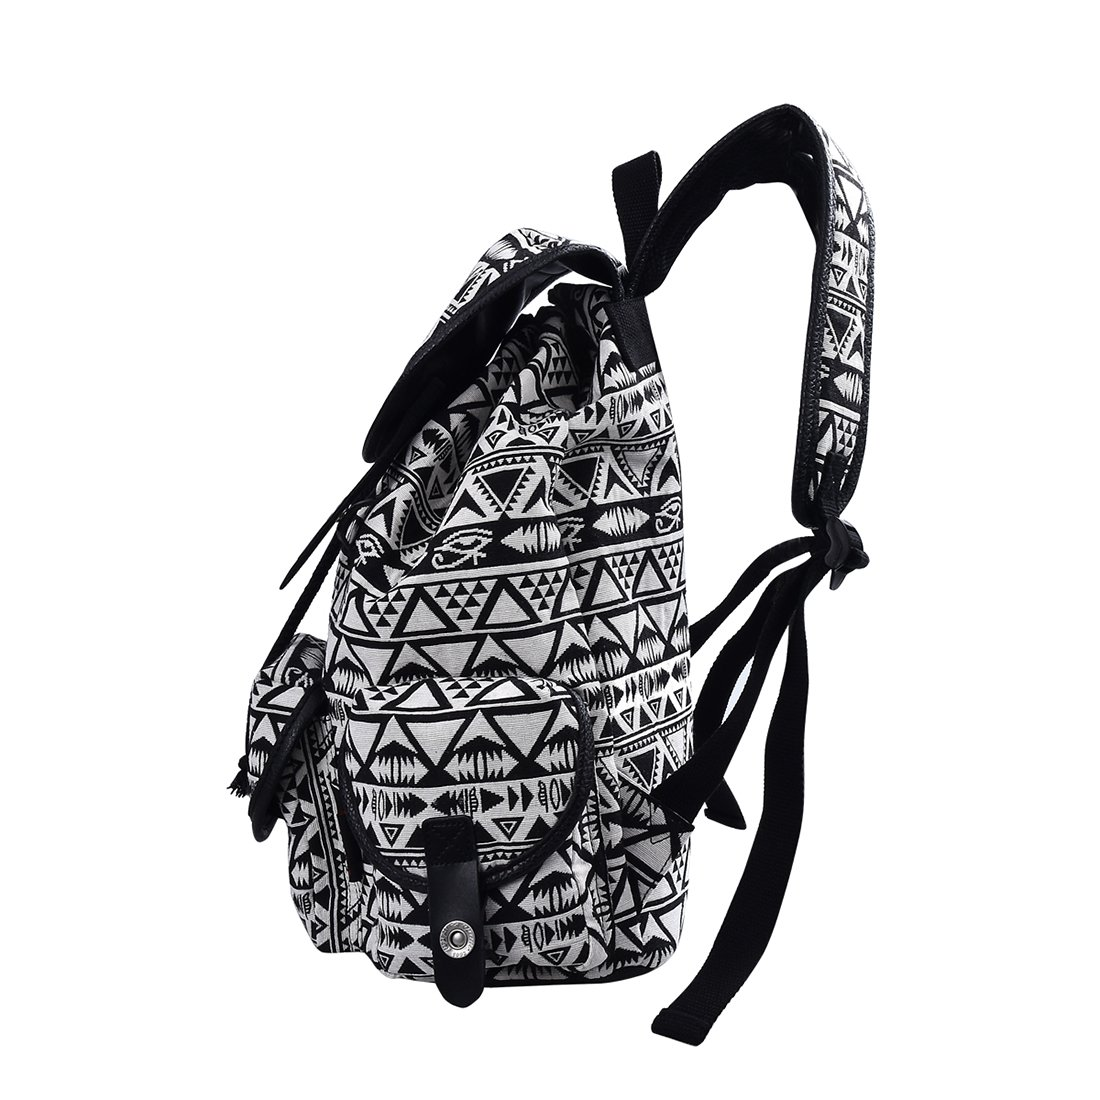 DGY Black Canvas Floral Printed Backpack 3 Pieces School Rucksack for Teen Girls Geometric3 Pcs